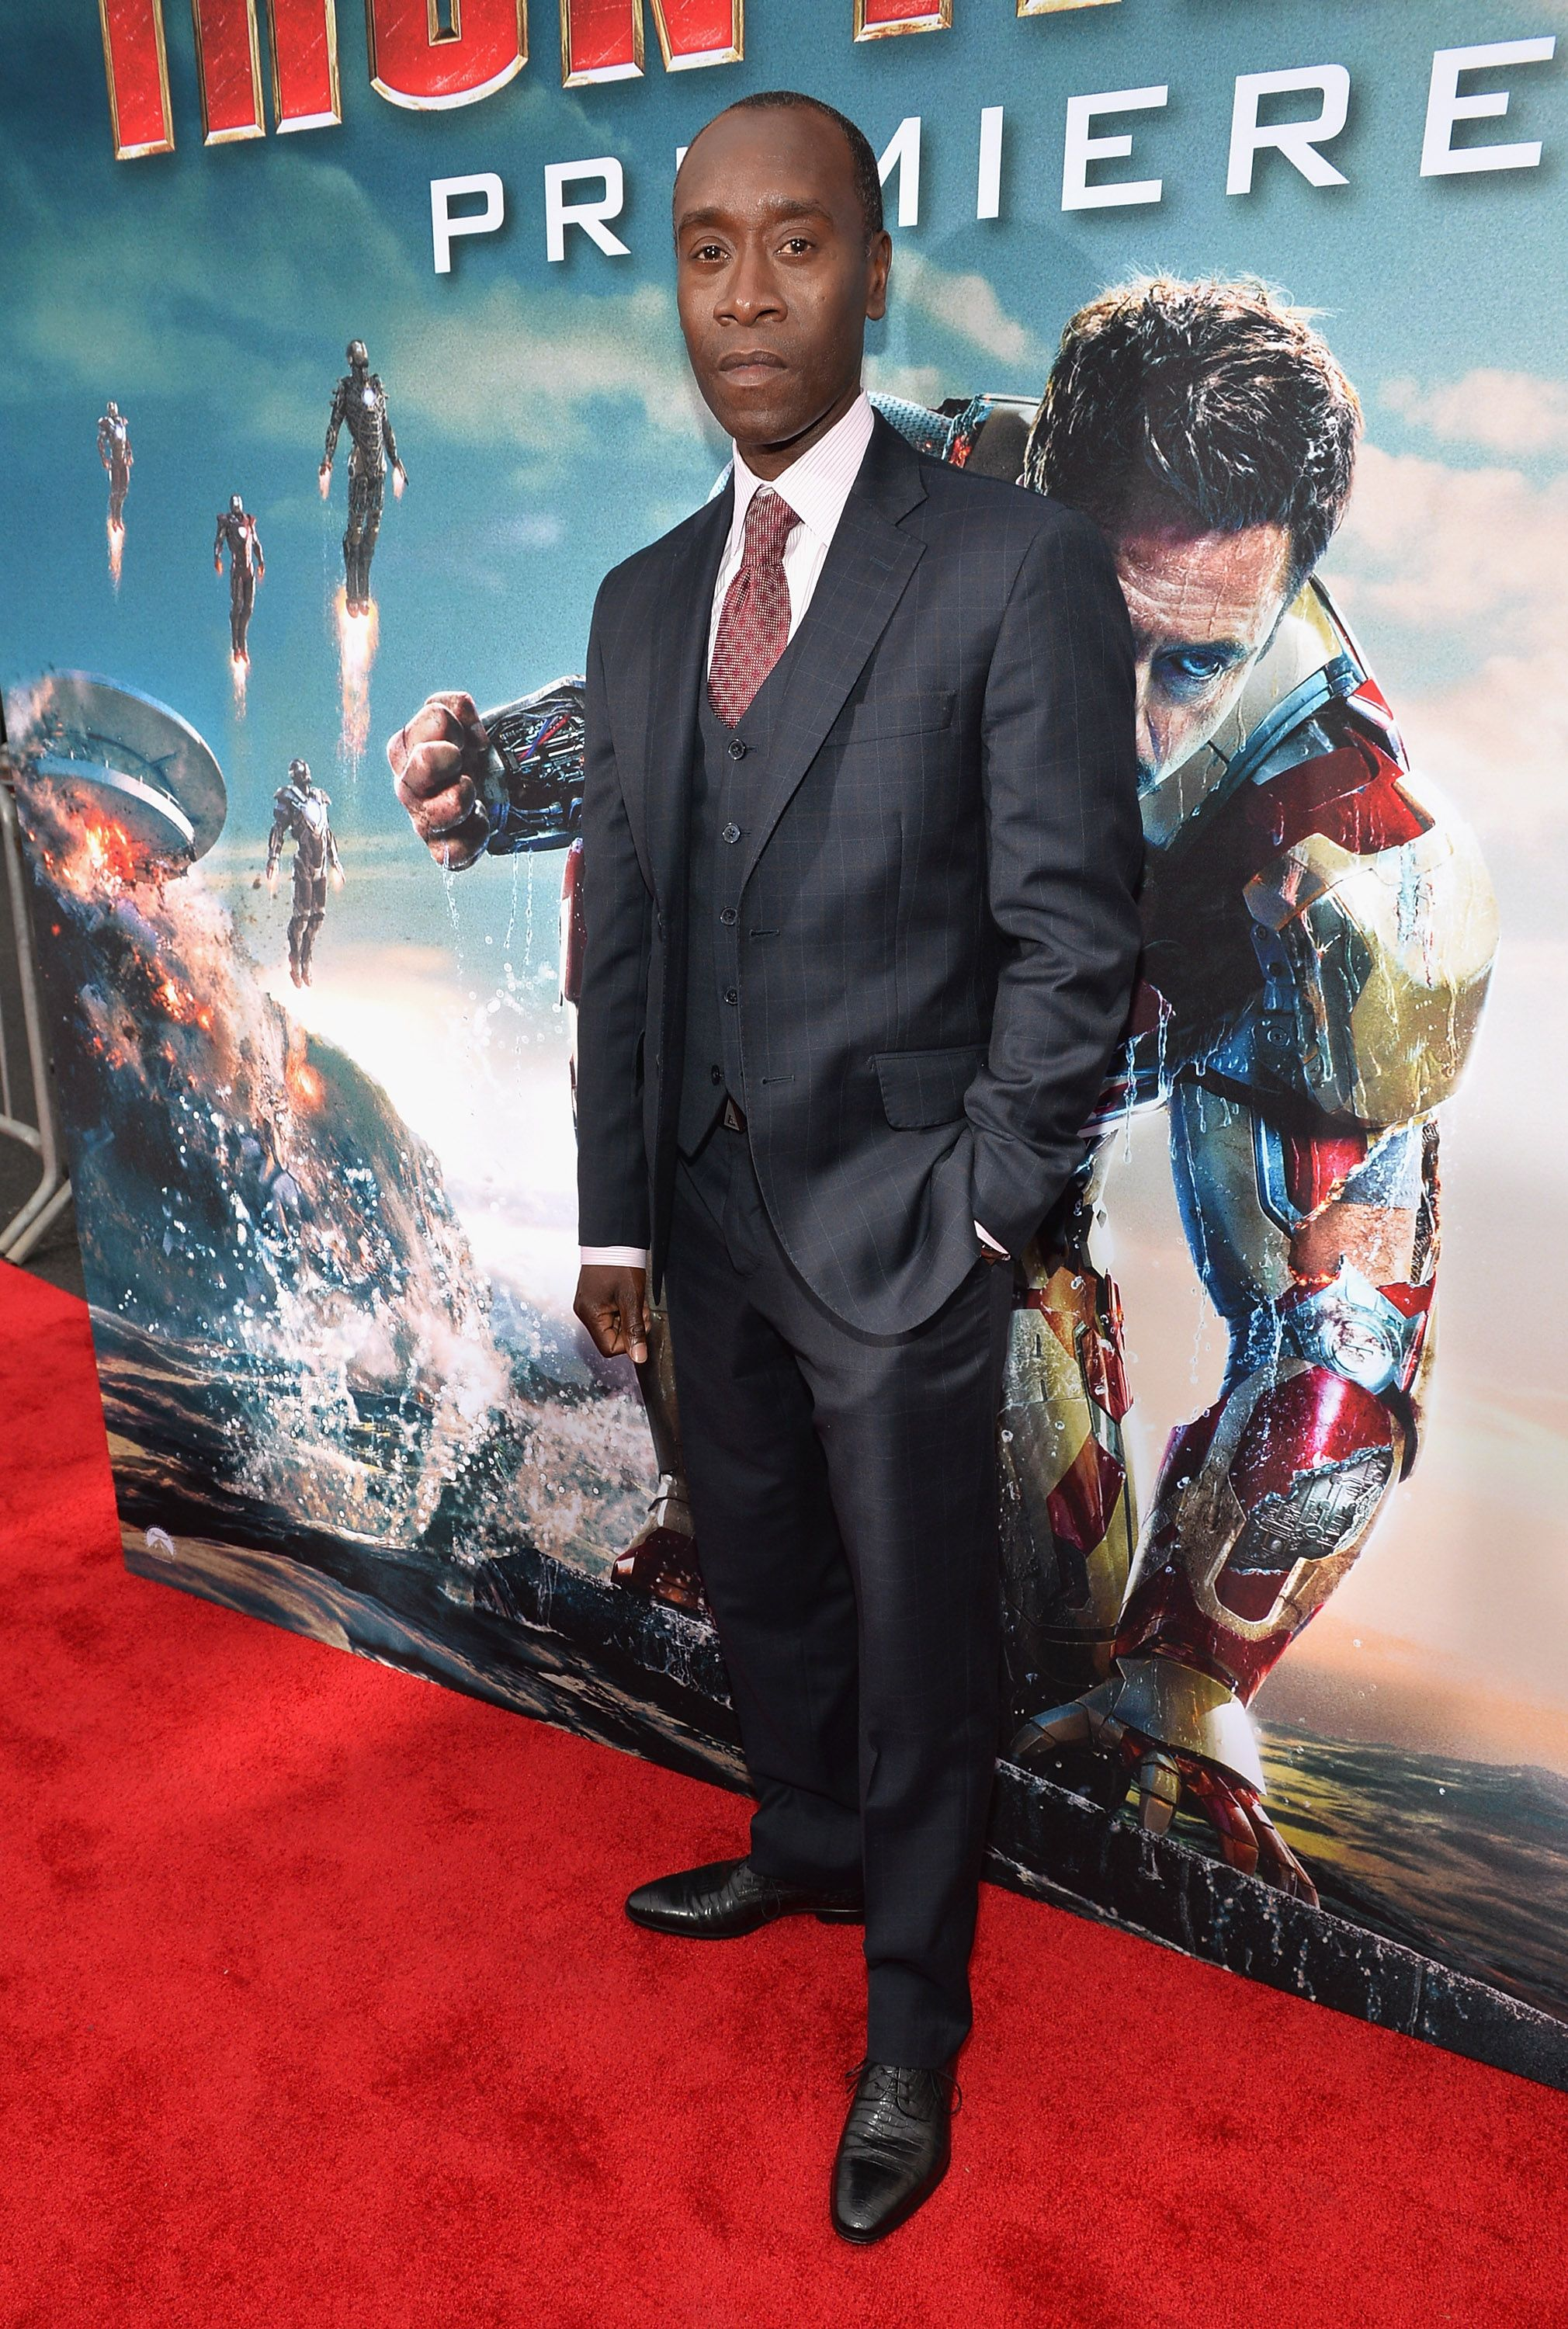 Actor Don Cheadle Attends Marvel S Iron Man 3 Premiere At The El Capitan Theatre On April 24 2013 In Hollywood Ca Iron Man 3 Marvel Universe Movies Iron Man